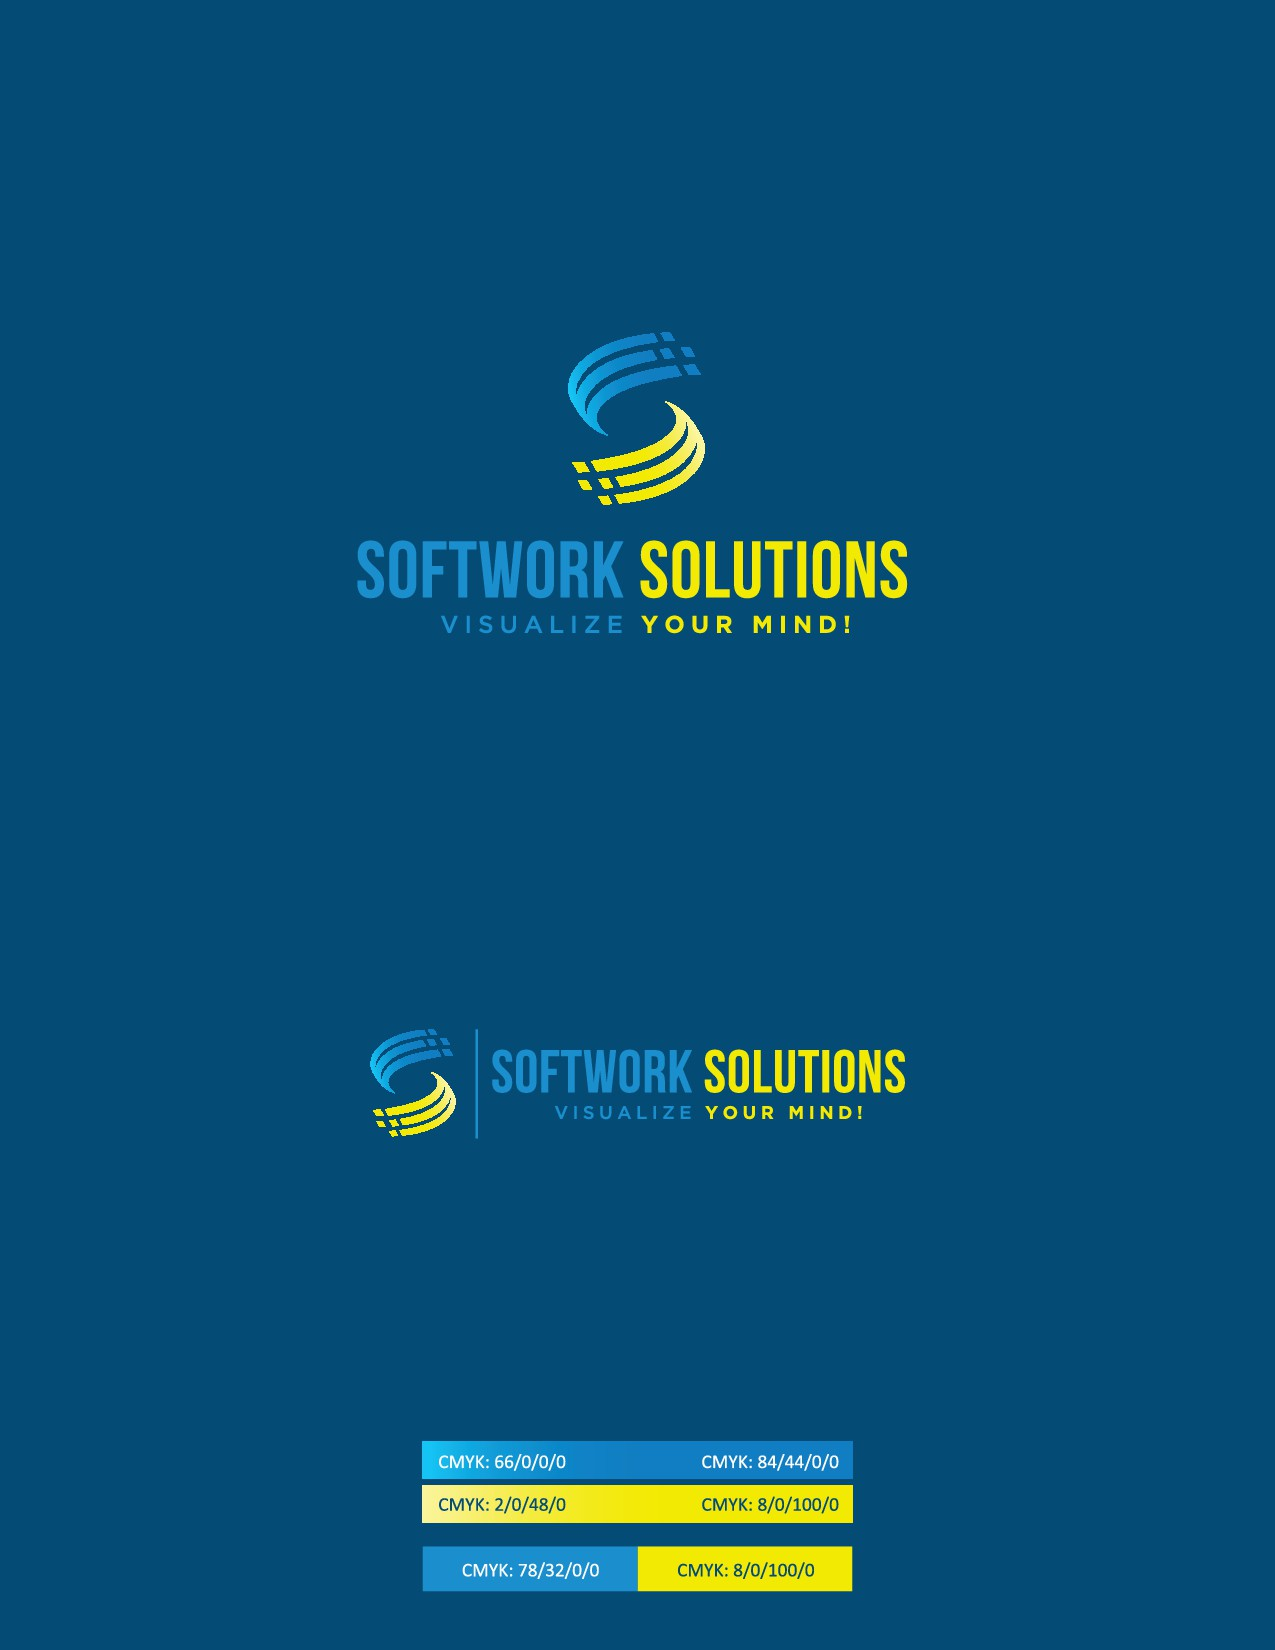 """Create Logo for : """"SOFTWORK SOLUTIONS - Visualize your Mind !"""""""